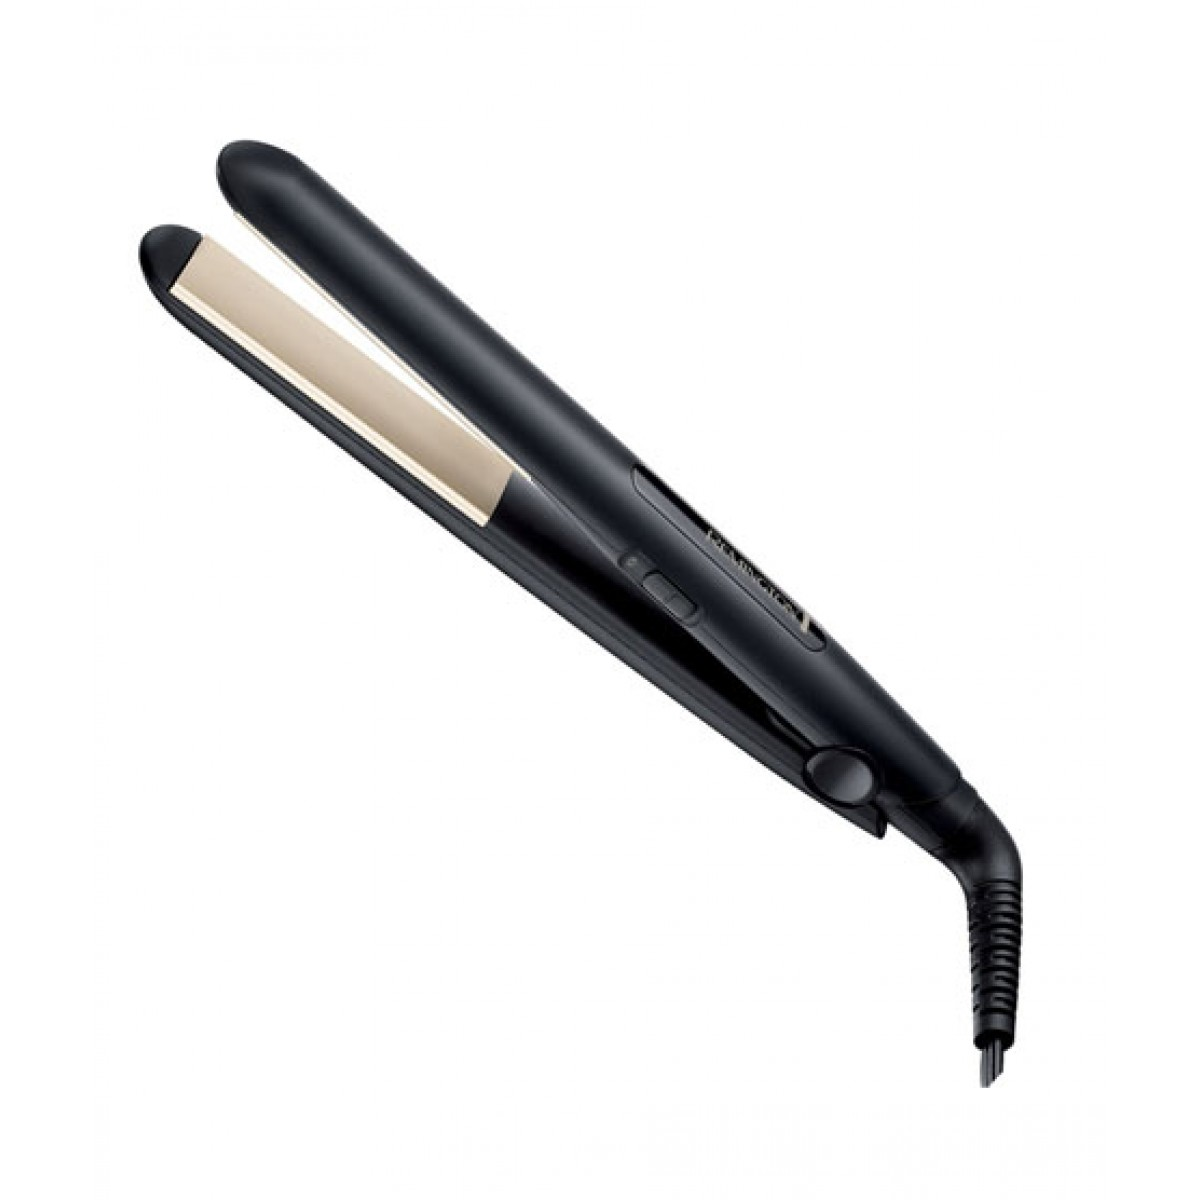 Remington Ceramic Slim Hair Straightener (S1510)